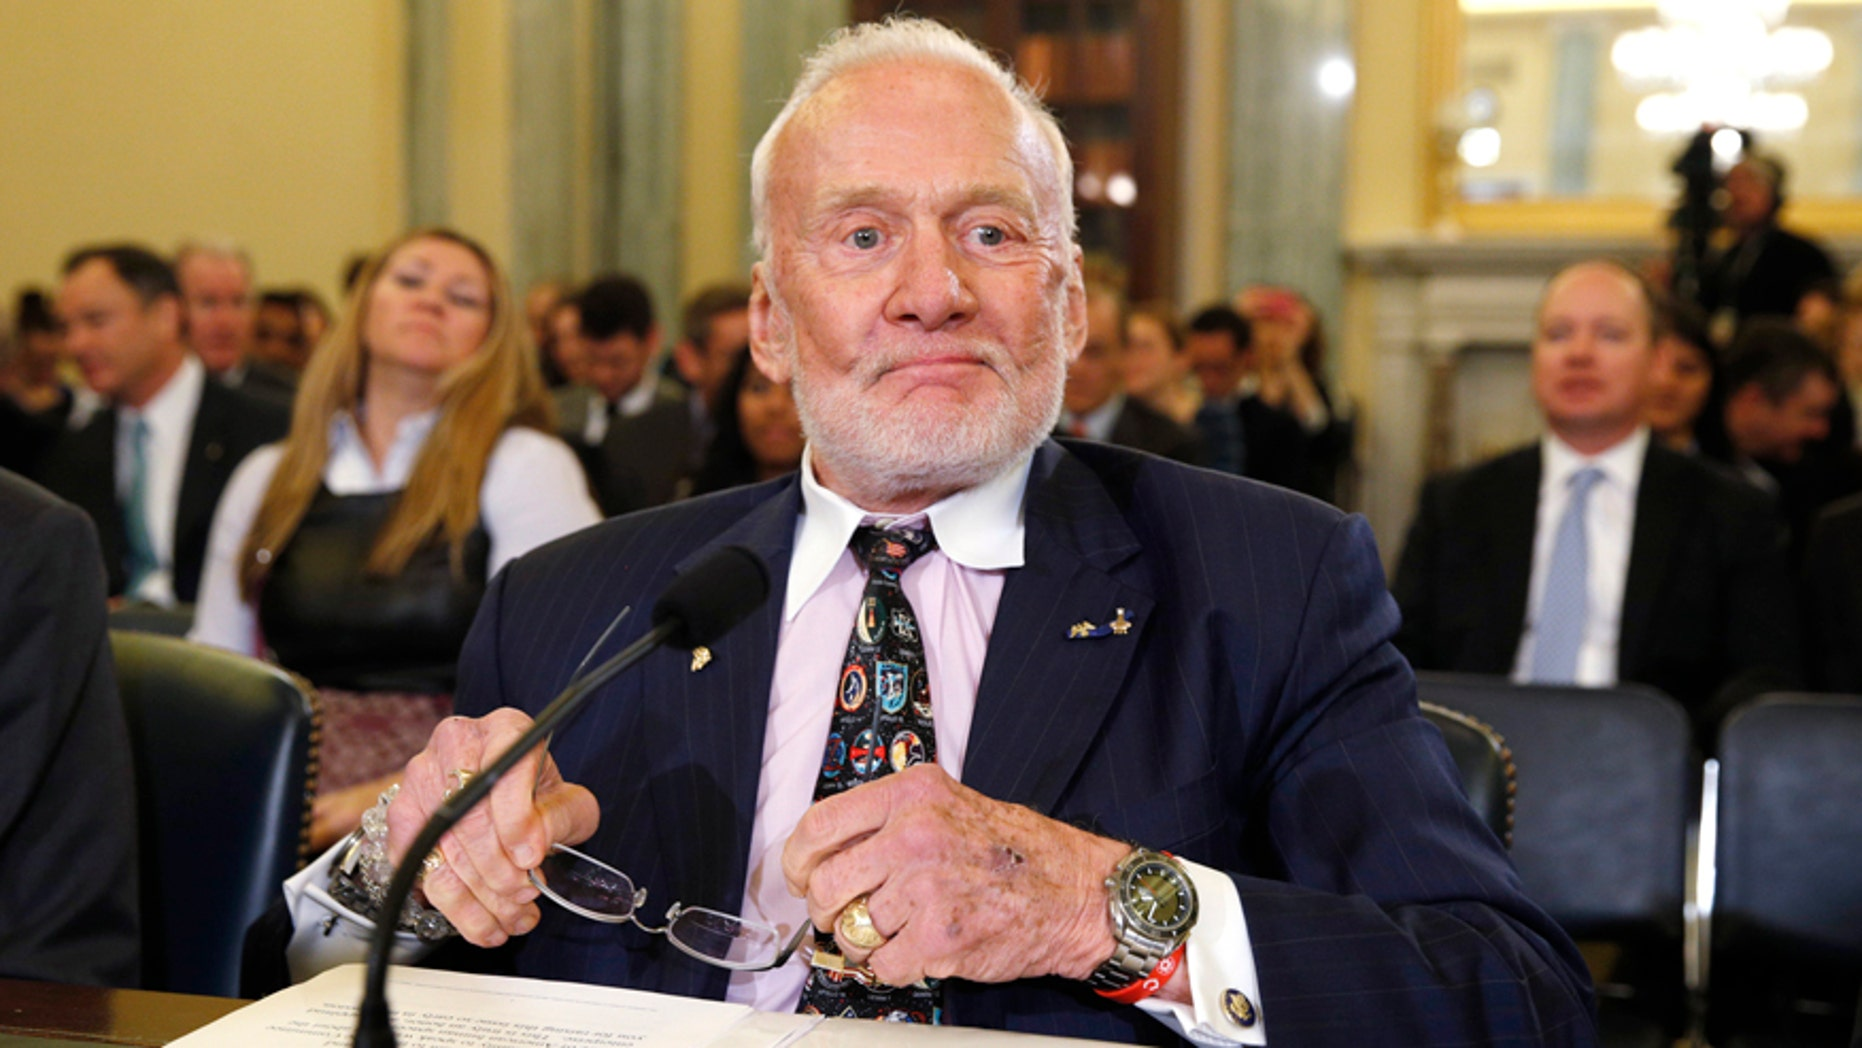 Former astronaut Buzz Aldrin takes his seat to testify before a Senate hearing on Capitol Hill in Washington, February 24, 2015.